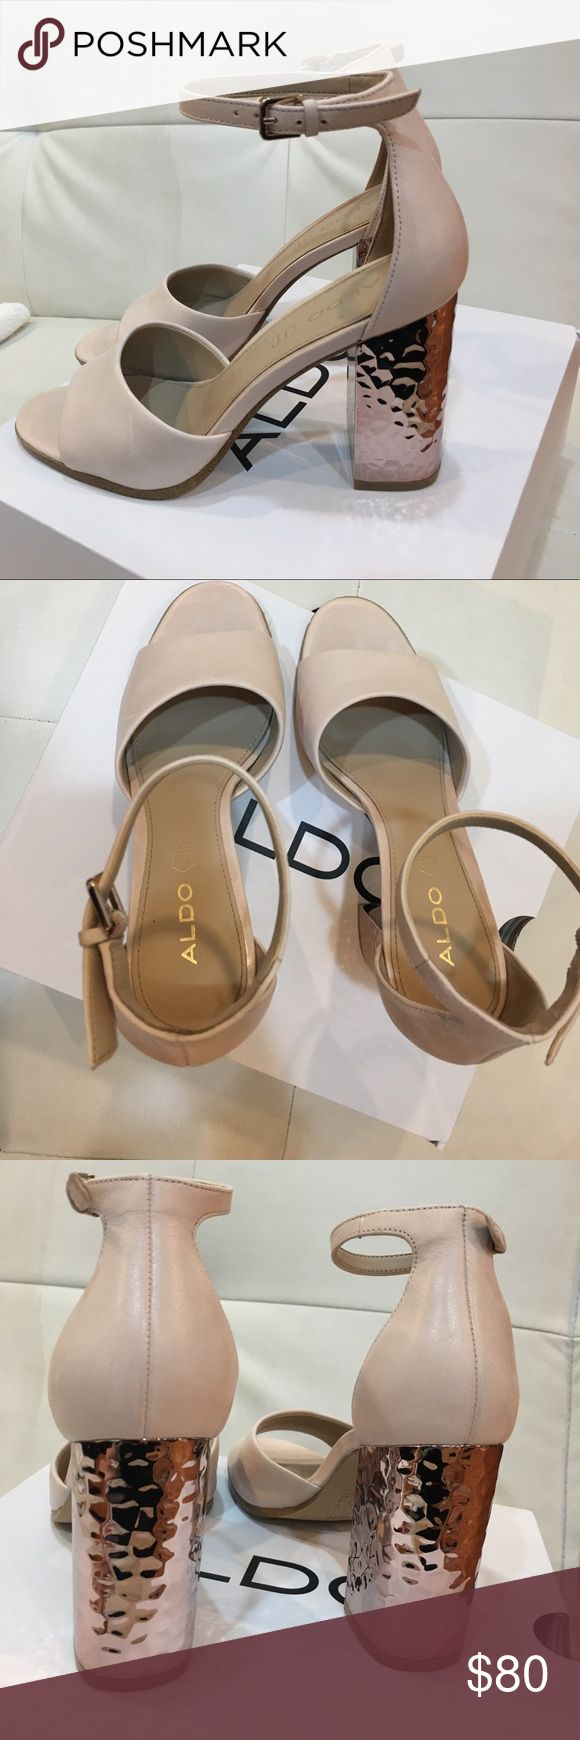 Aldo Heels! Brand new Aldo high heels sandals . Worn once to a wedding 2017 Aldo summer collection!!!!!! Aldo Shoes Heels